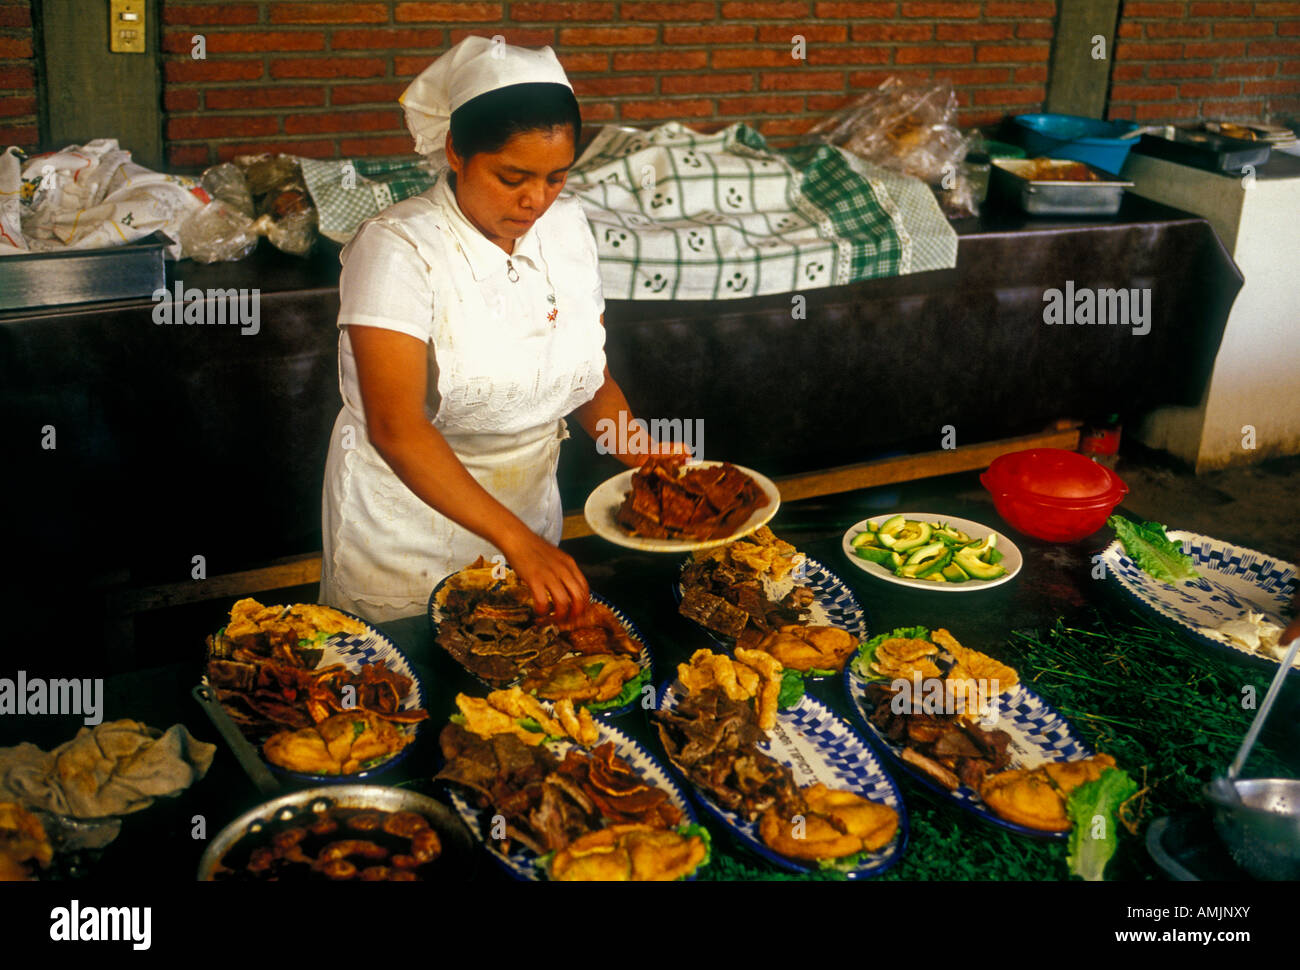 an introduction to the cuisine and food of mexico The traditional cuisine of mexico mexican food has some of the most well-known and loved dishes in the world mexican cuisine varies by region due to local climate, geography and ethnic differences among the indigenous inhabitants.